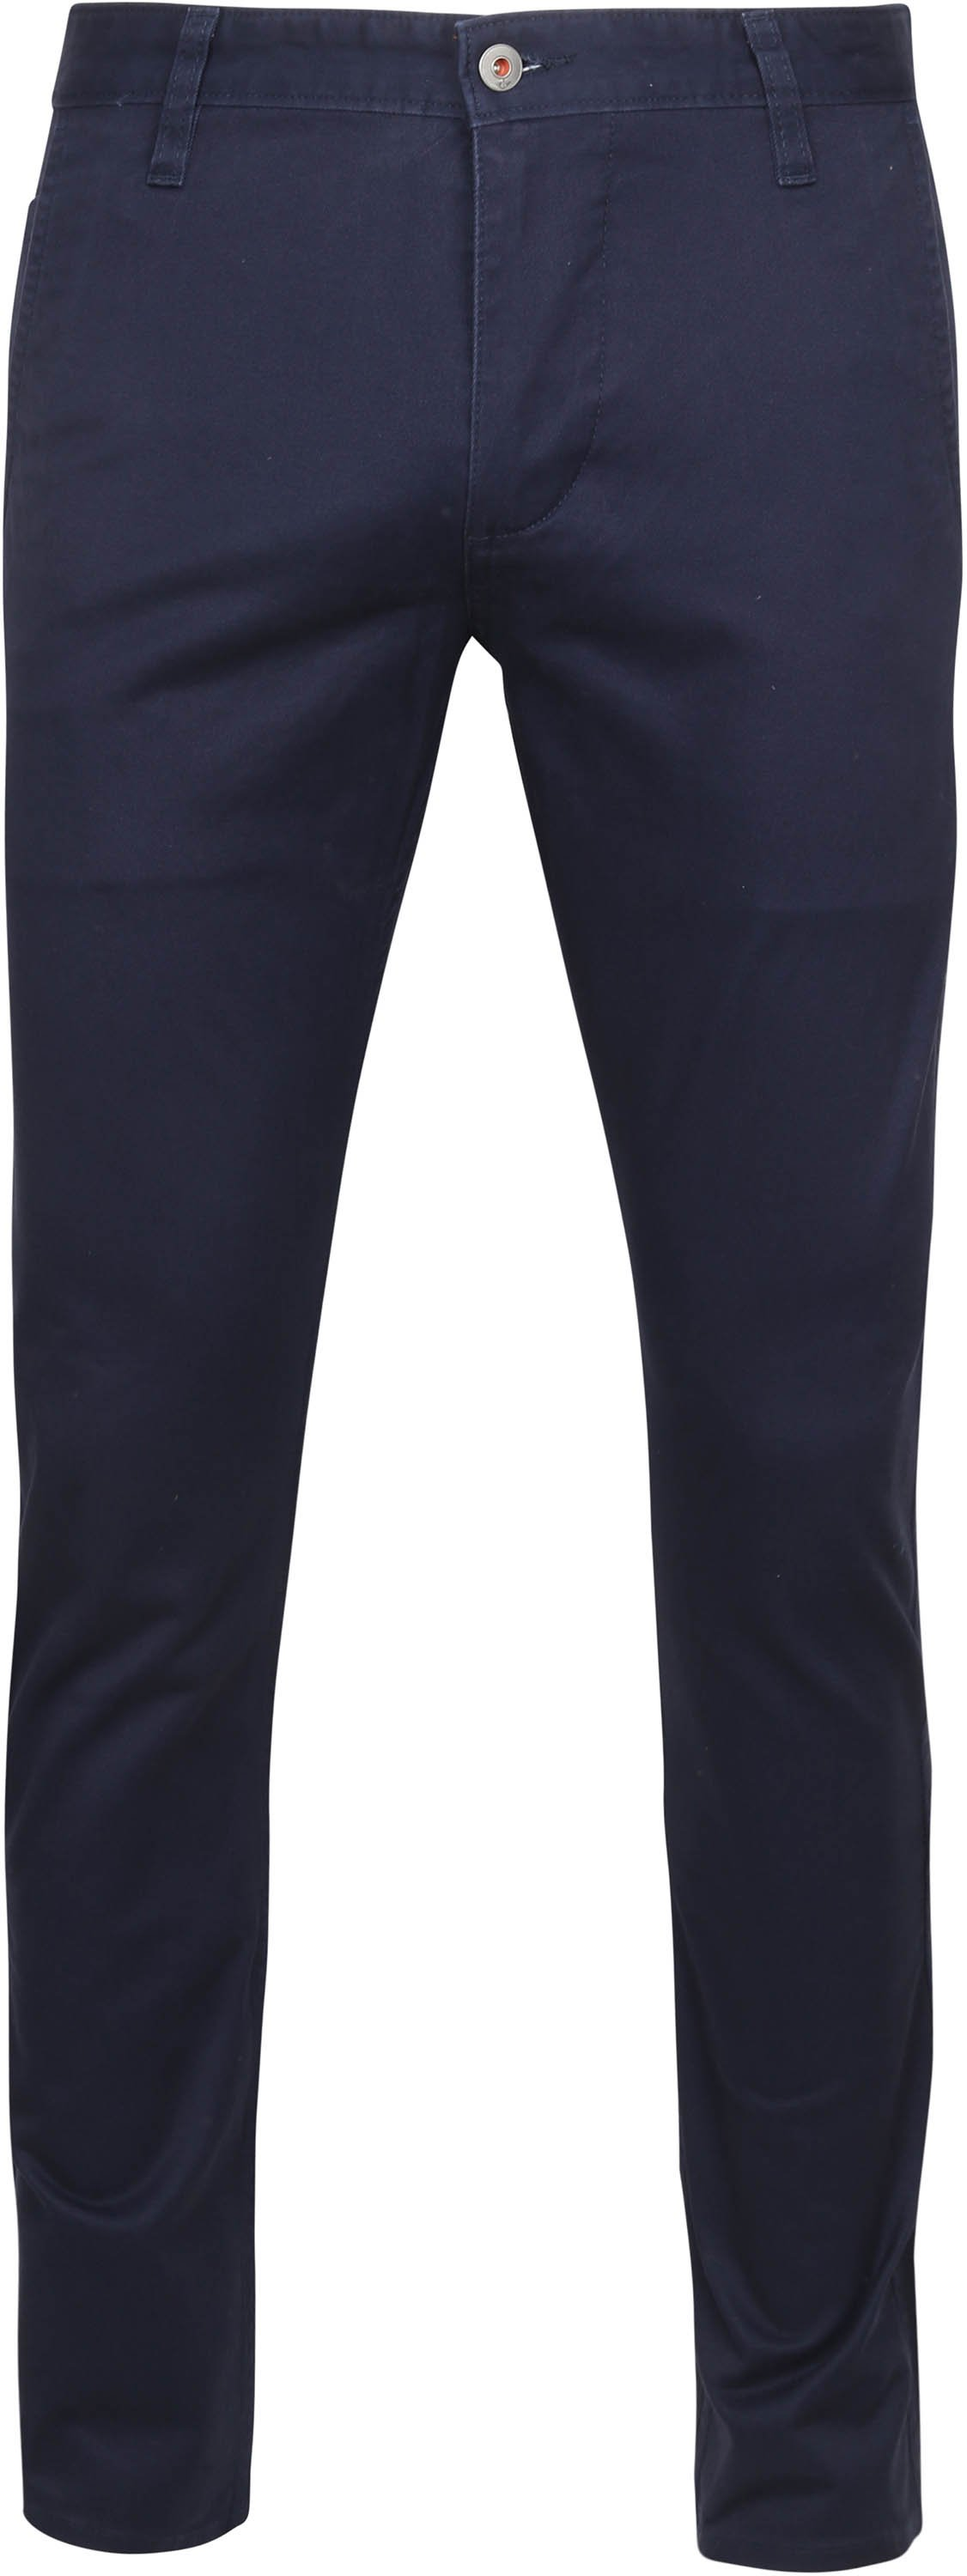 Dockers Alpha Skinny Navy